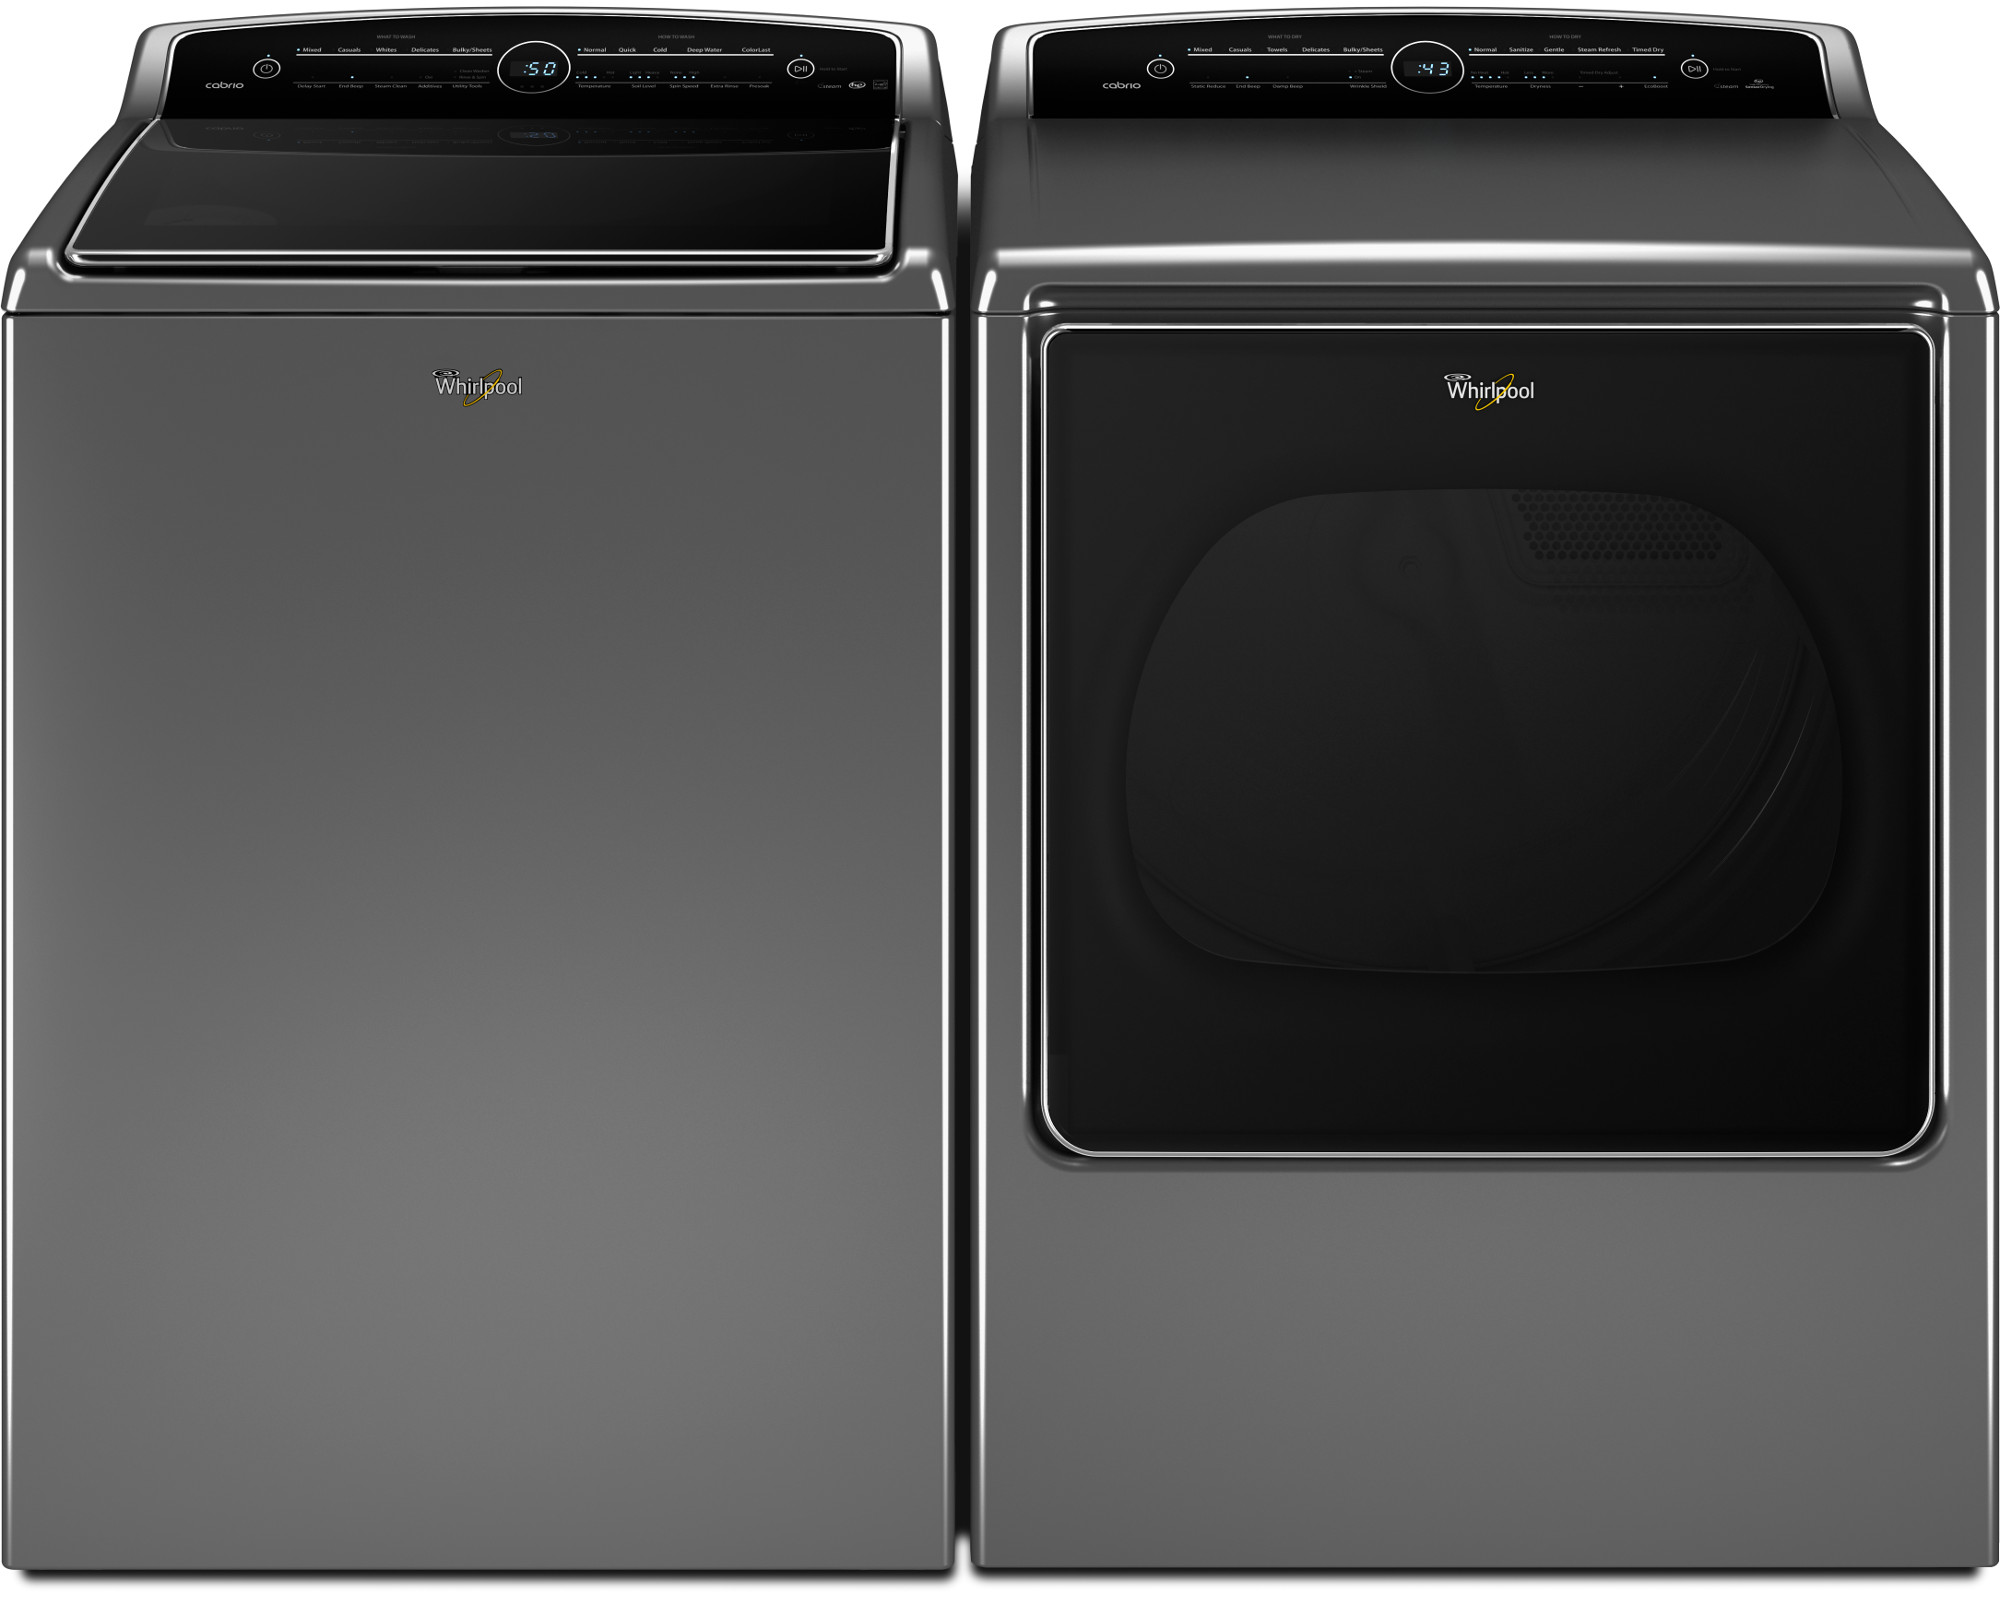 Whirlpool WED8500DC 8.8 cu. ft. Cabrio® Electric Dryer - Chrome Shadow